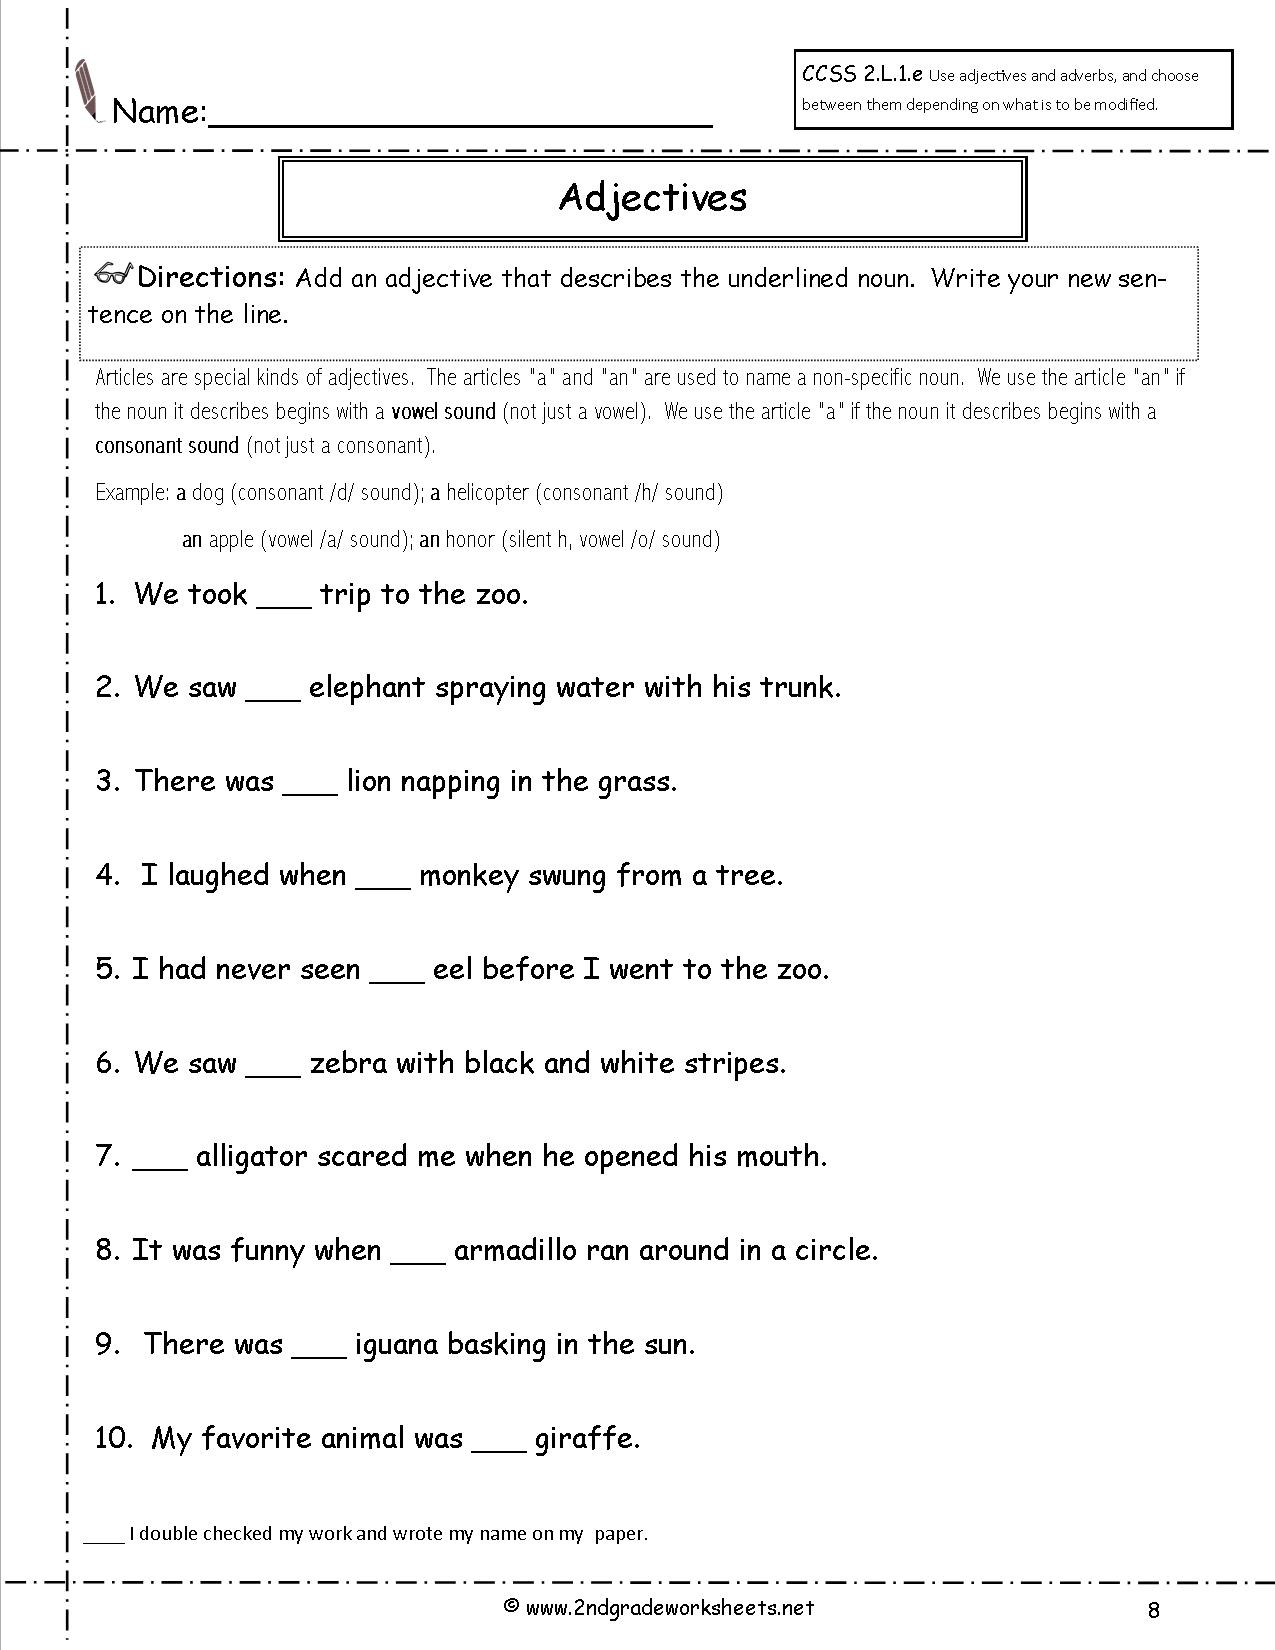 19 Best Images Of Common Theme Worksheets